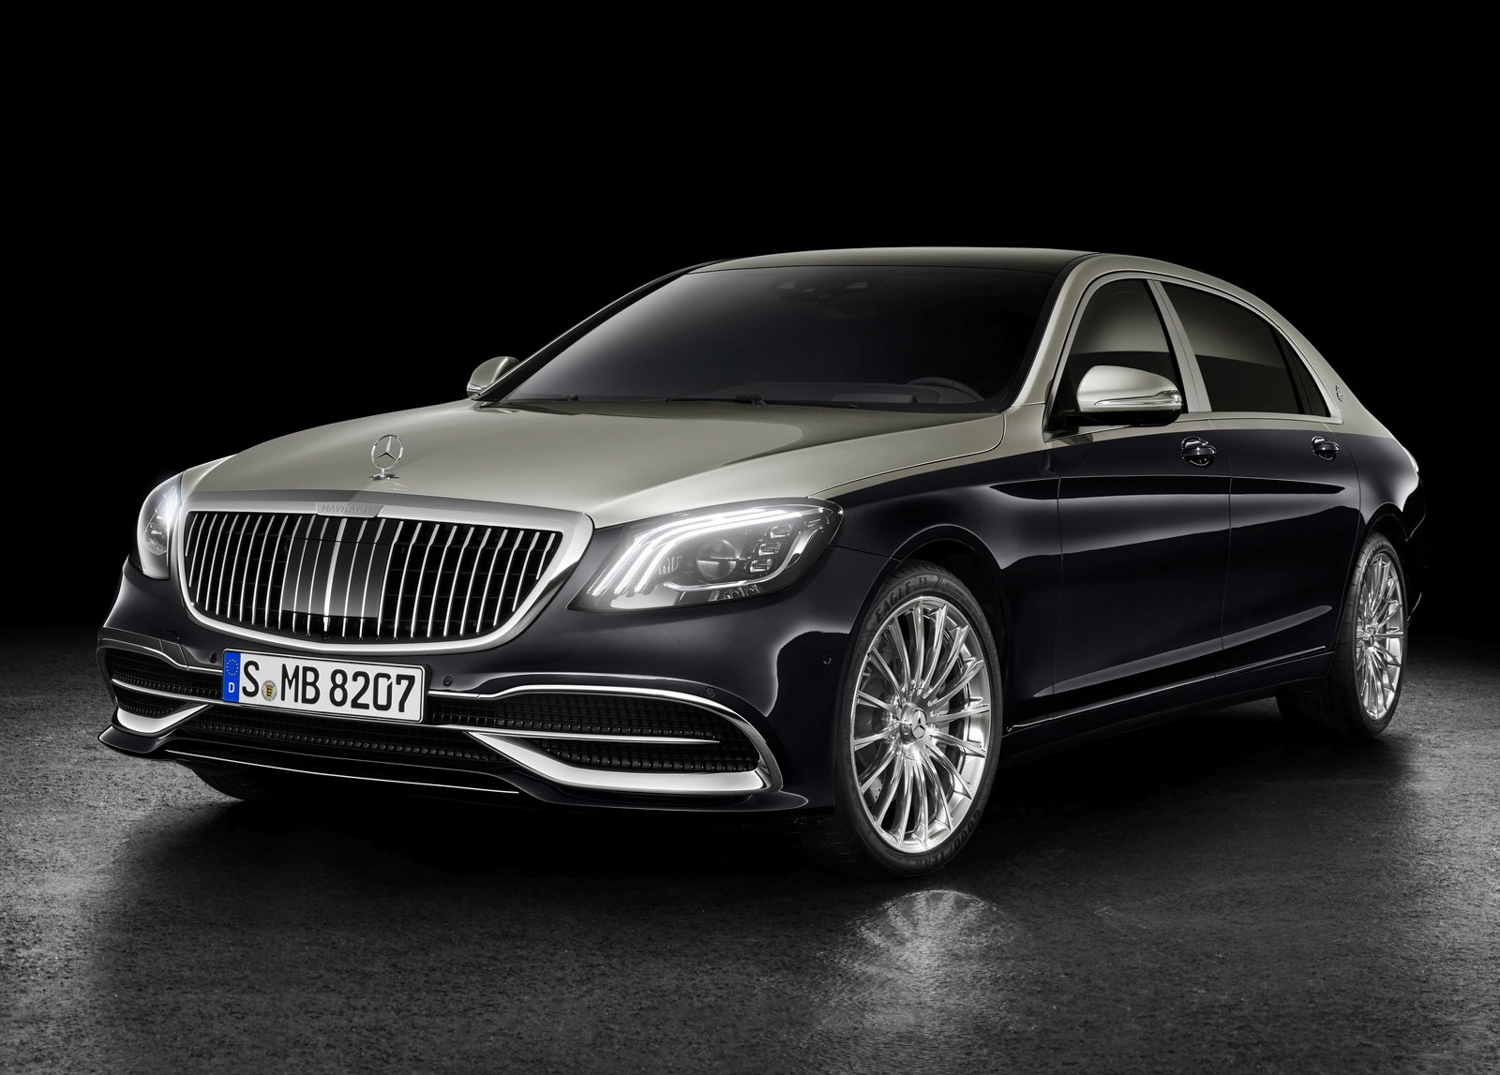 2019 Mercedes-Benz S-Class Maybach 3/4 front